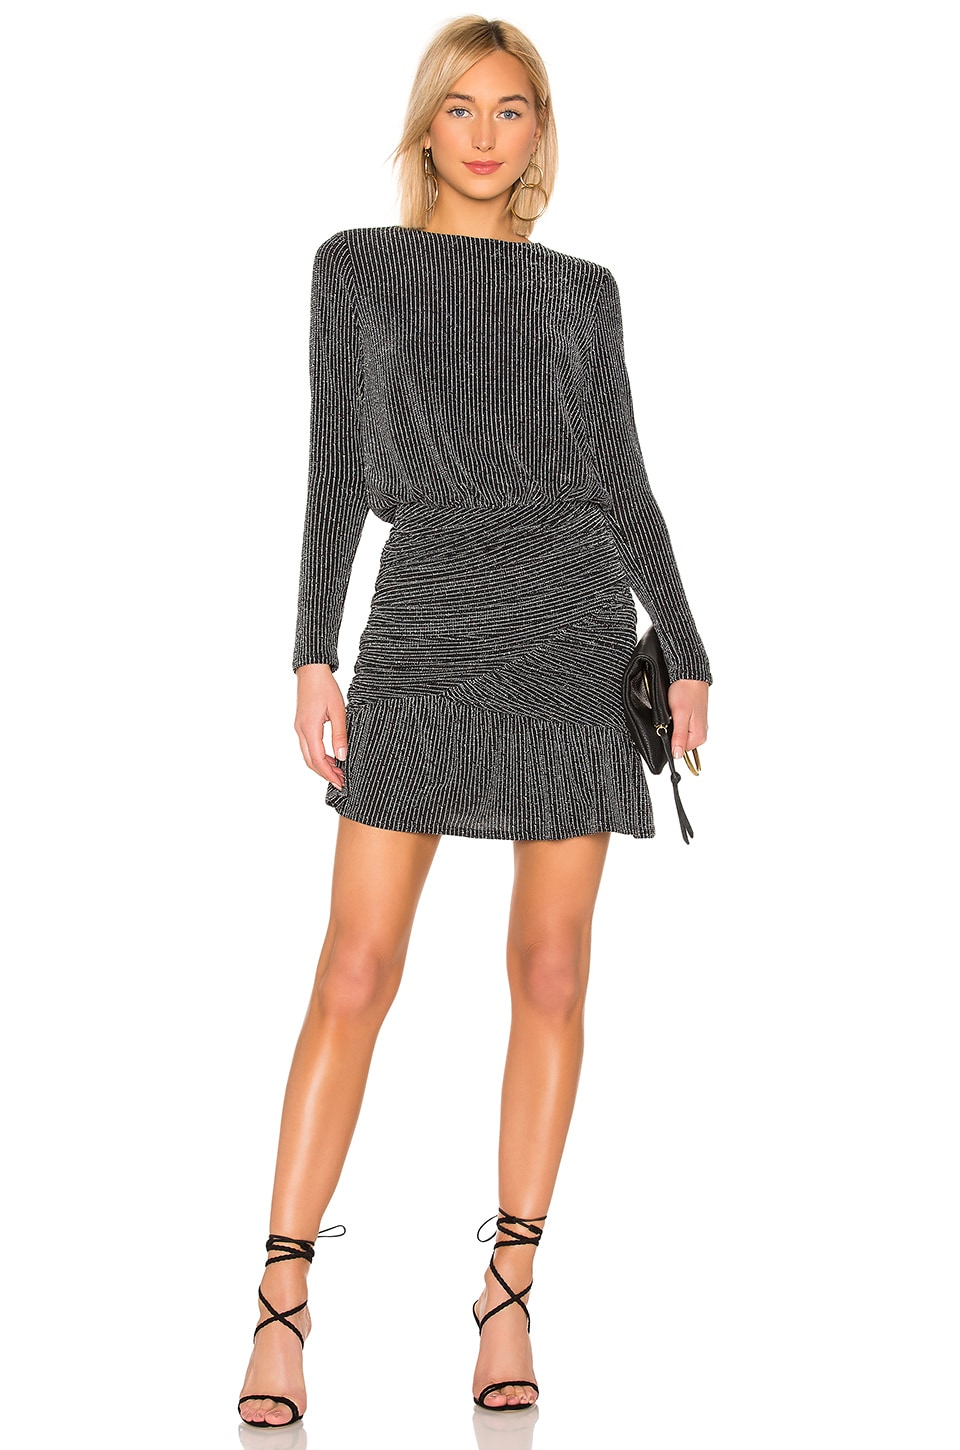 krisa Drape Skirt Long Sleeve Mini Dress in Glam